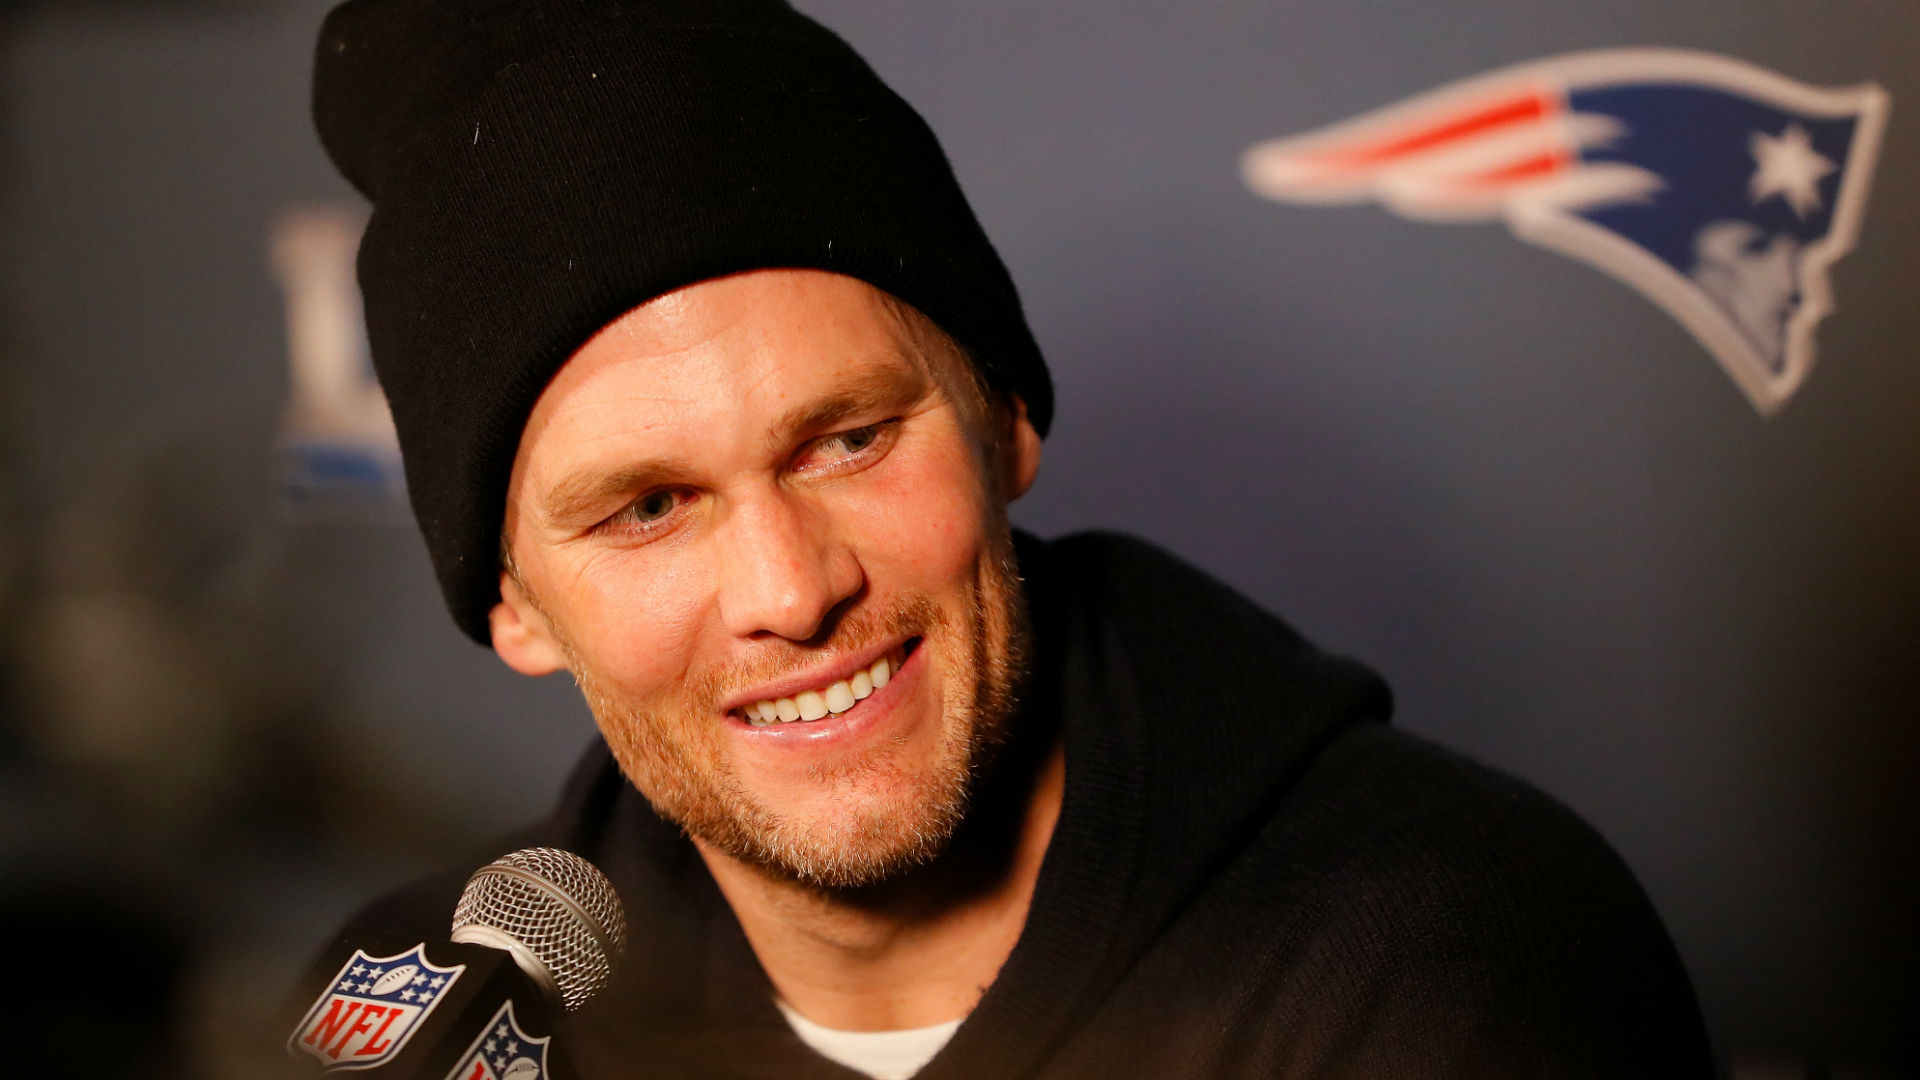 NFL news and notes: Patriots' Tom Brady has a new workout partner; Jets' Sam Darnold details 'rookie wall'